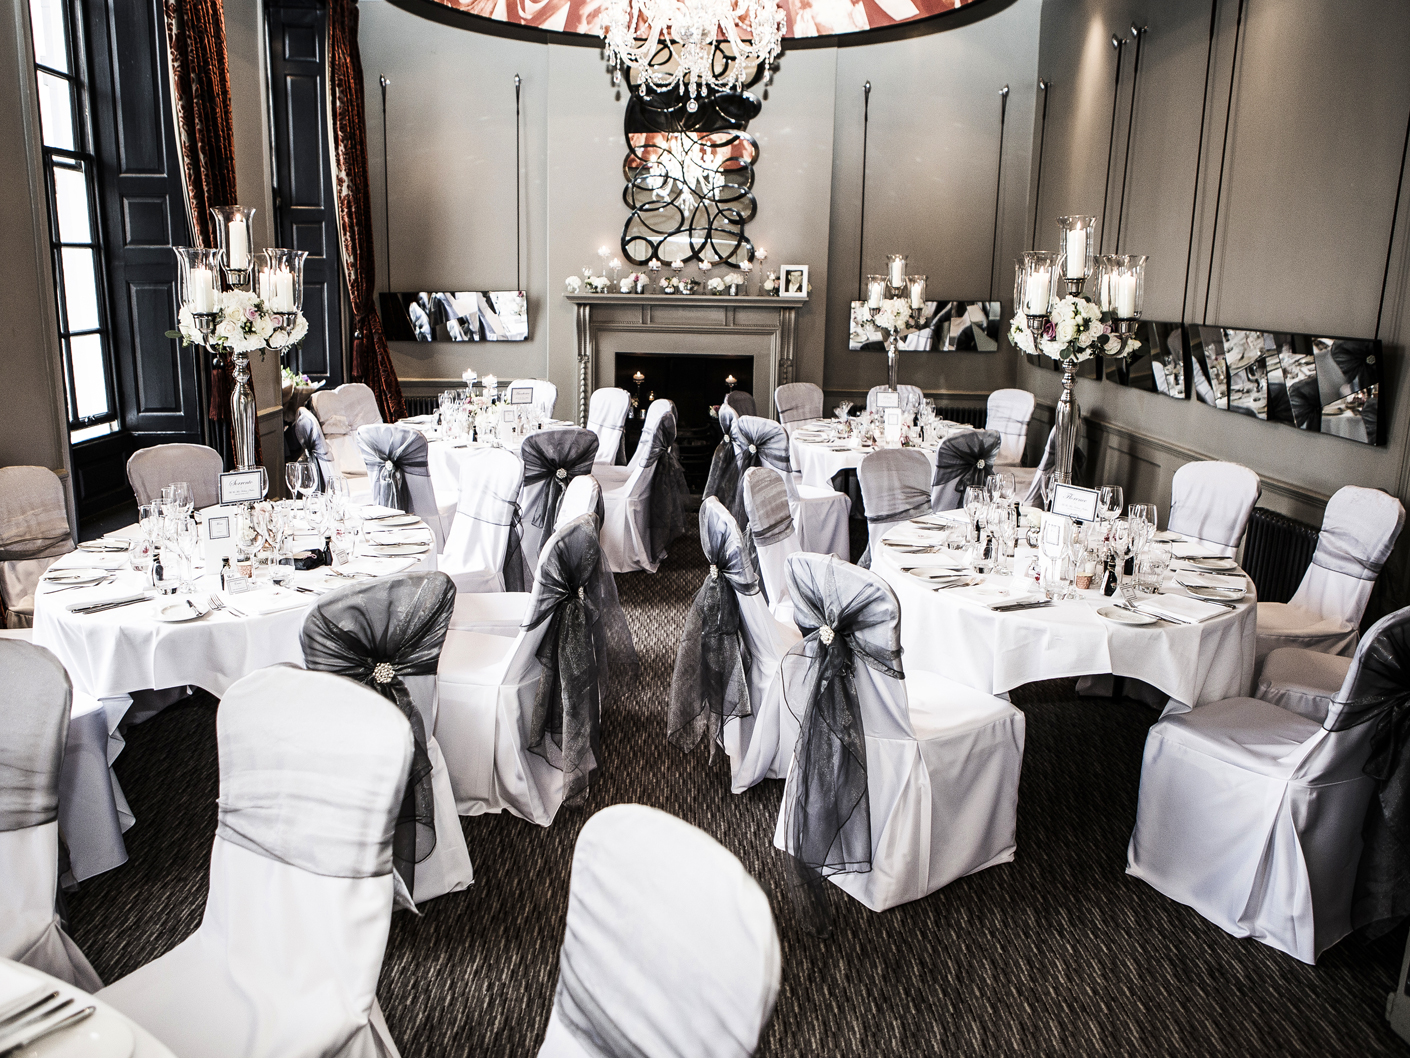 photography-of-the-wedding-breakfast-tables-at-te-oddfellows-hotel-chester